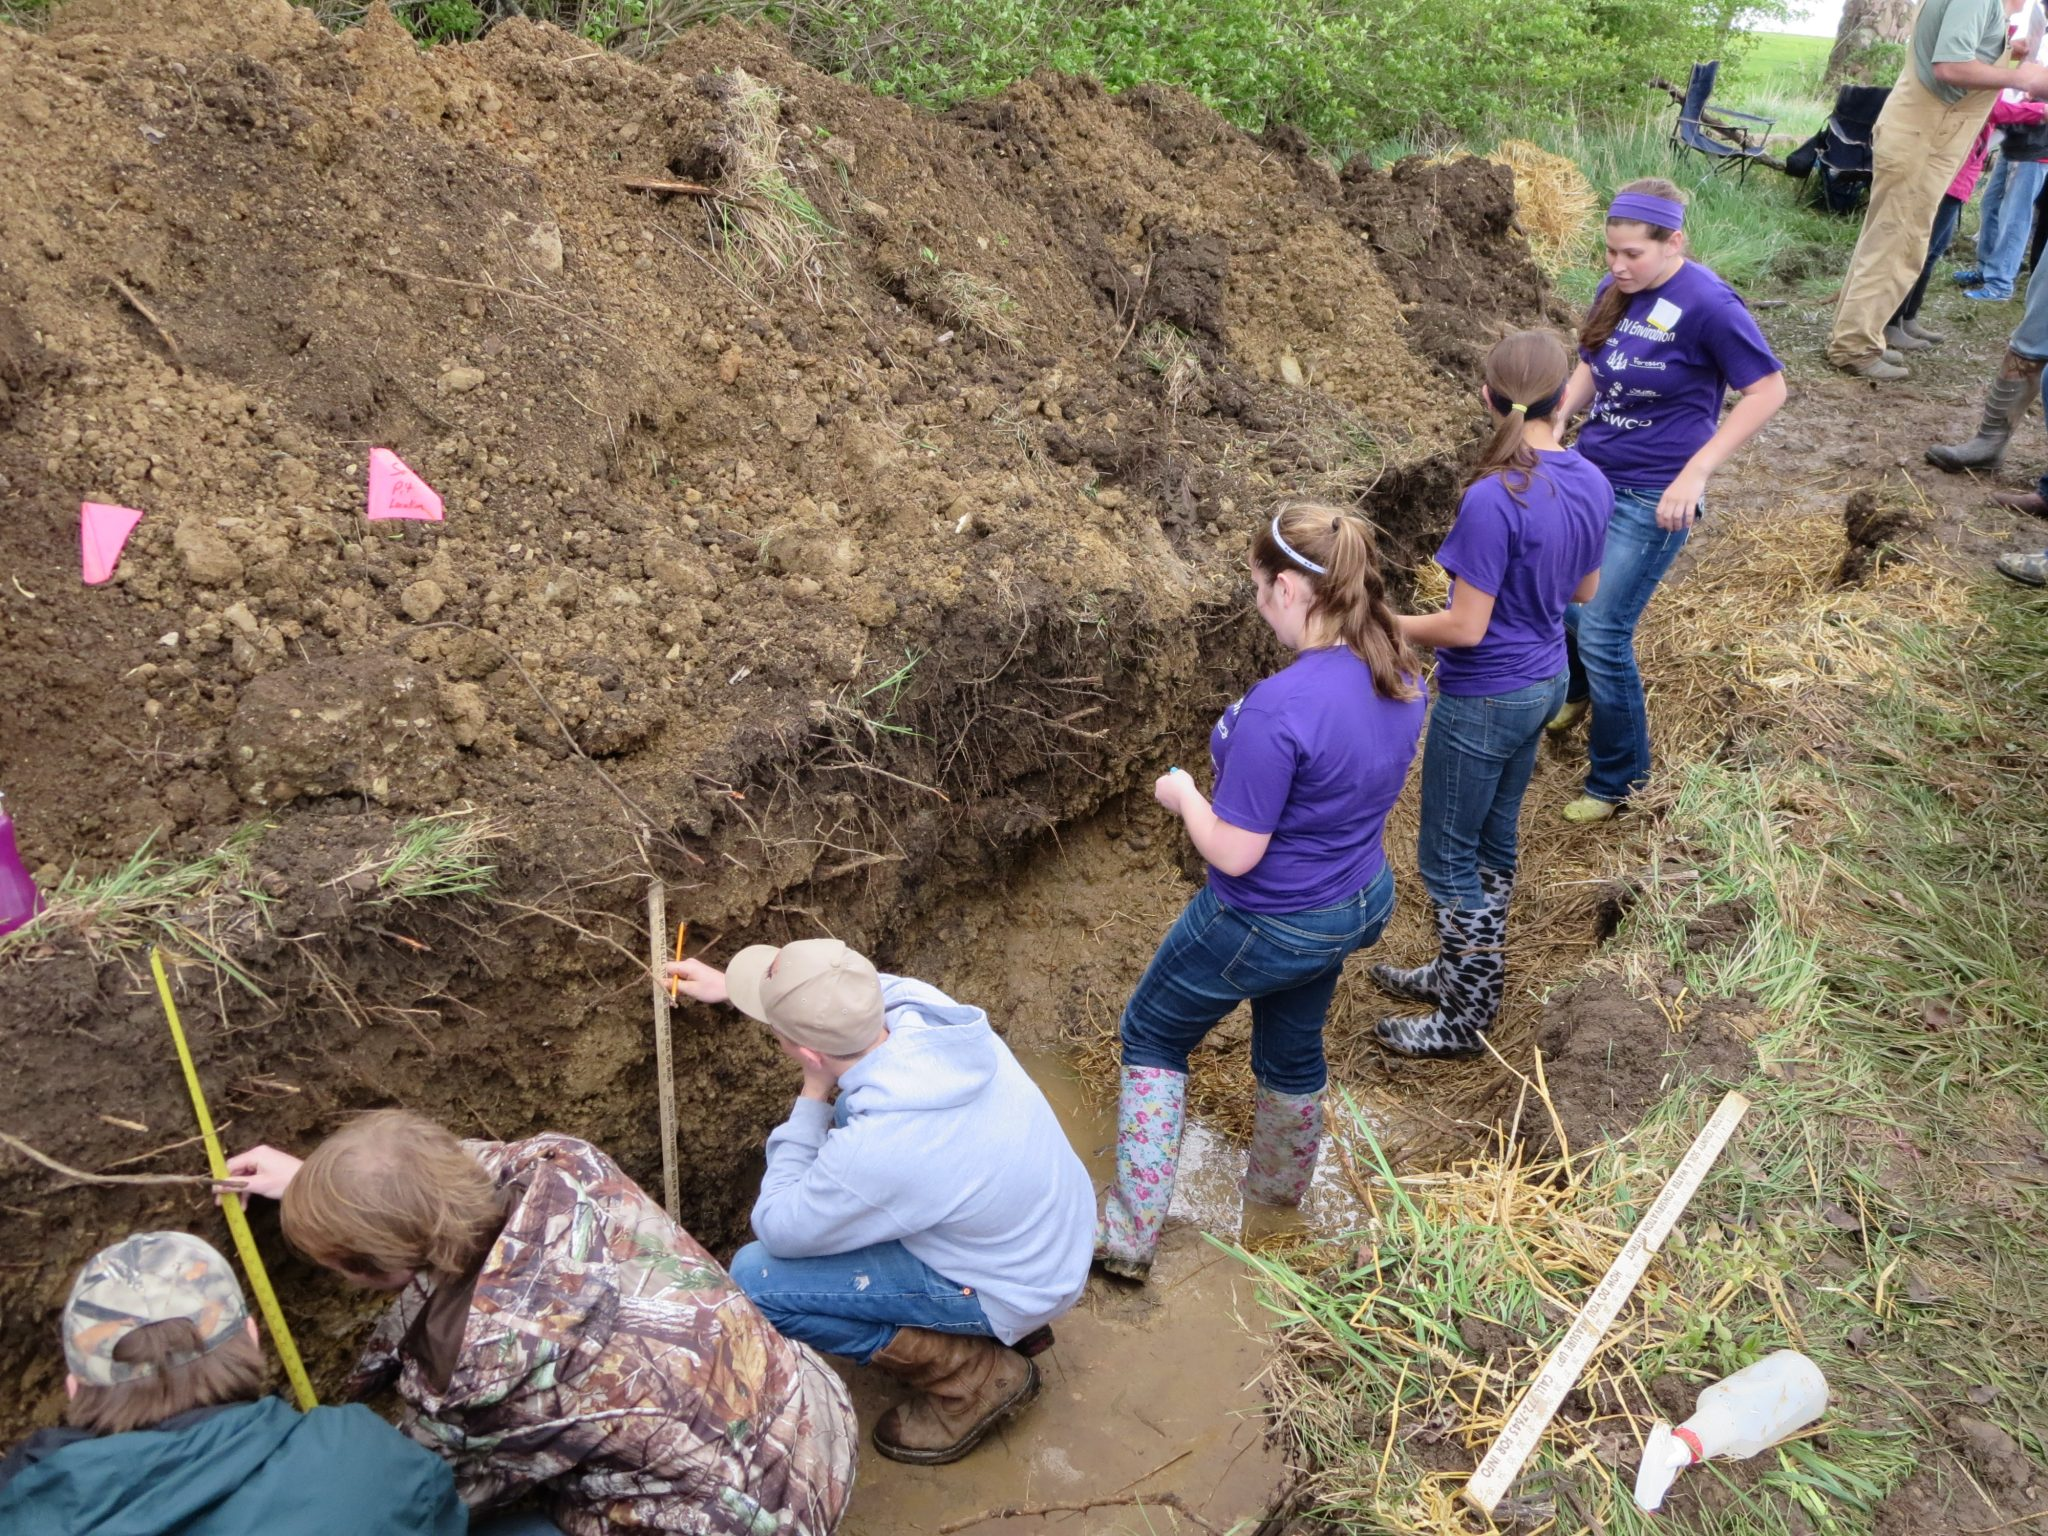 2014 PW soils, youth in a trench meassuring the depth of trench